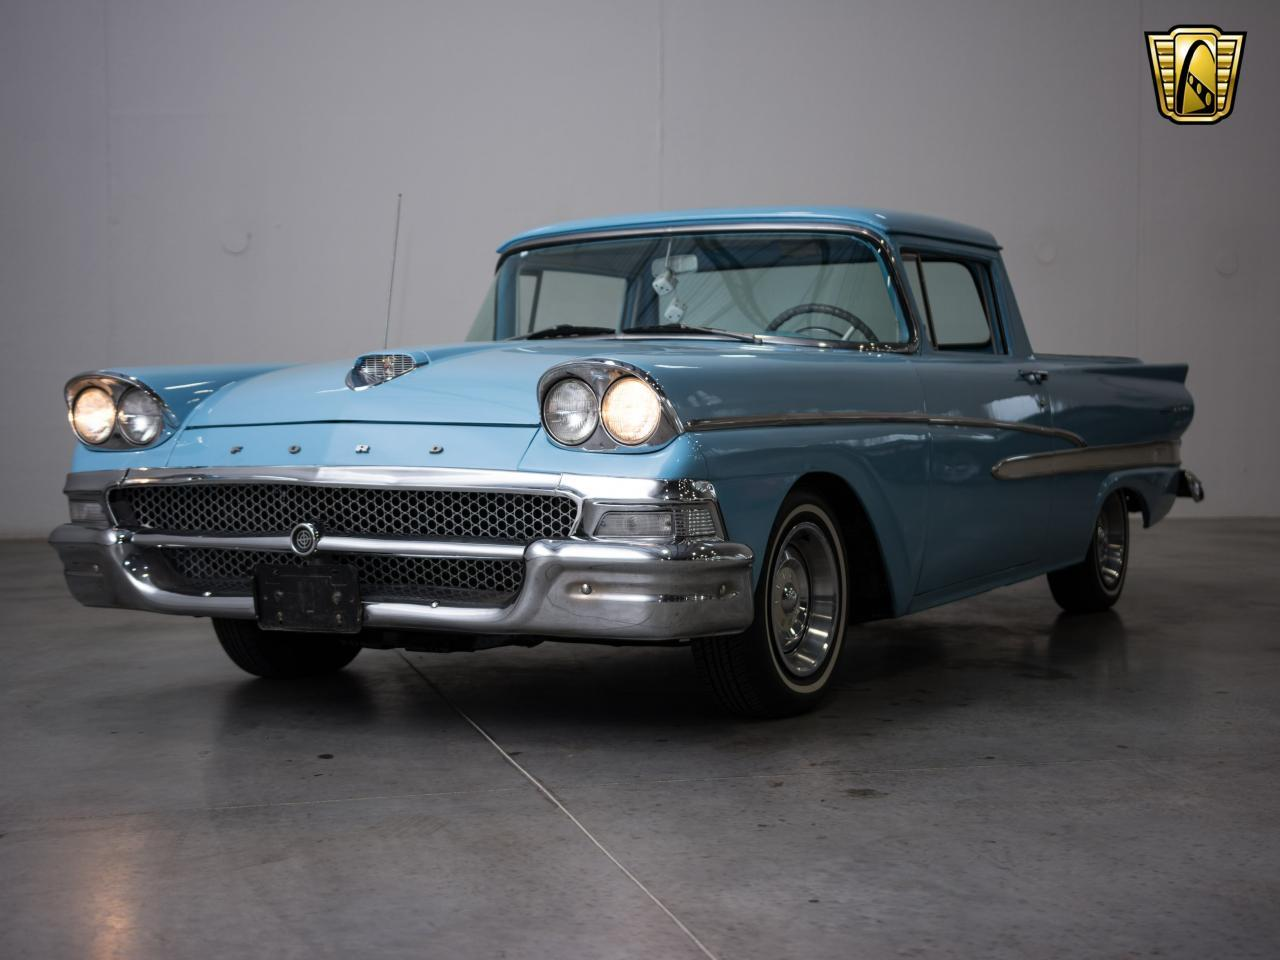 Large Picture of Classic 1958 Ford Ranchero located in Kenosha Wisconsin - $20,995.00 Offered by Gateway Classic Cars - Milwaukee - KH0V